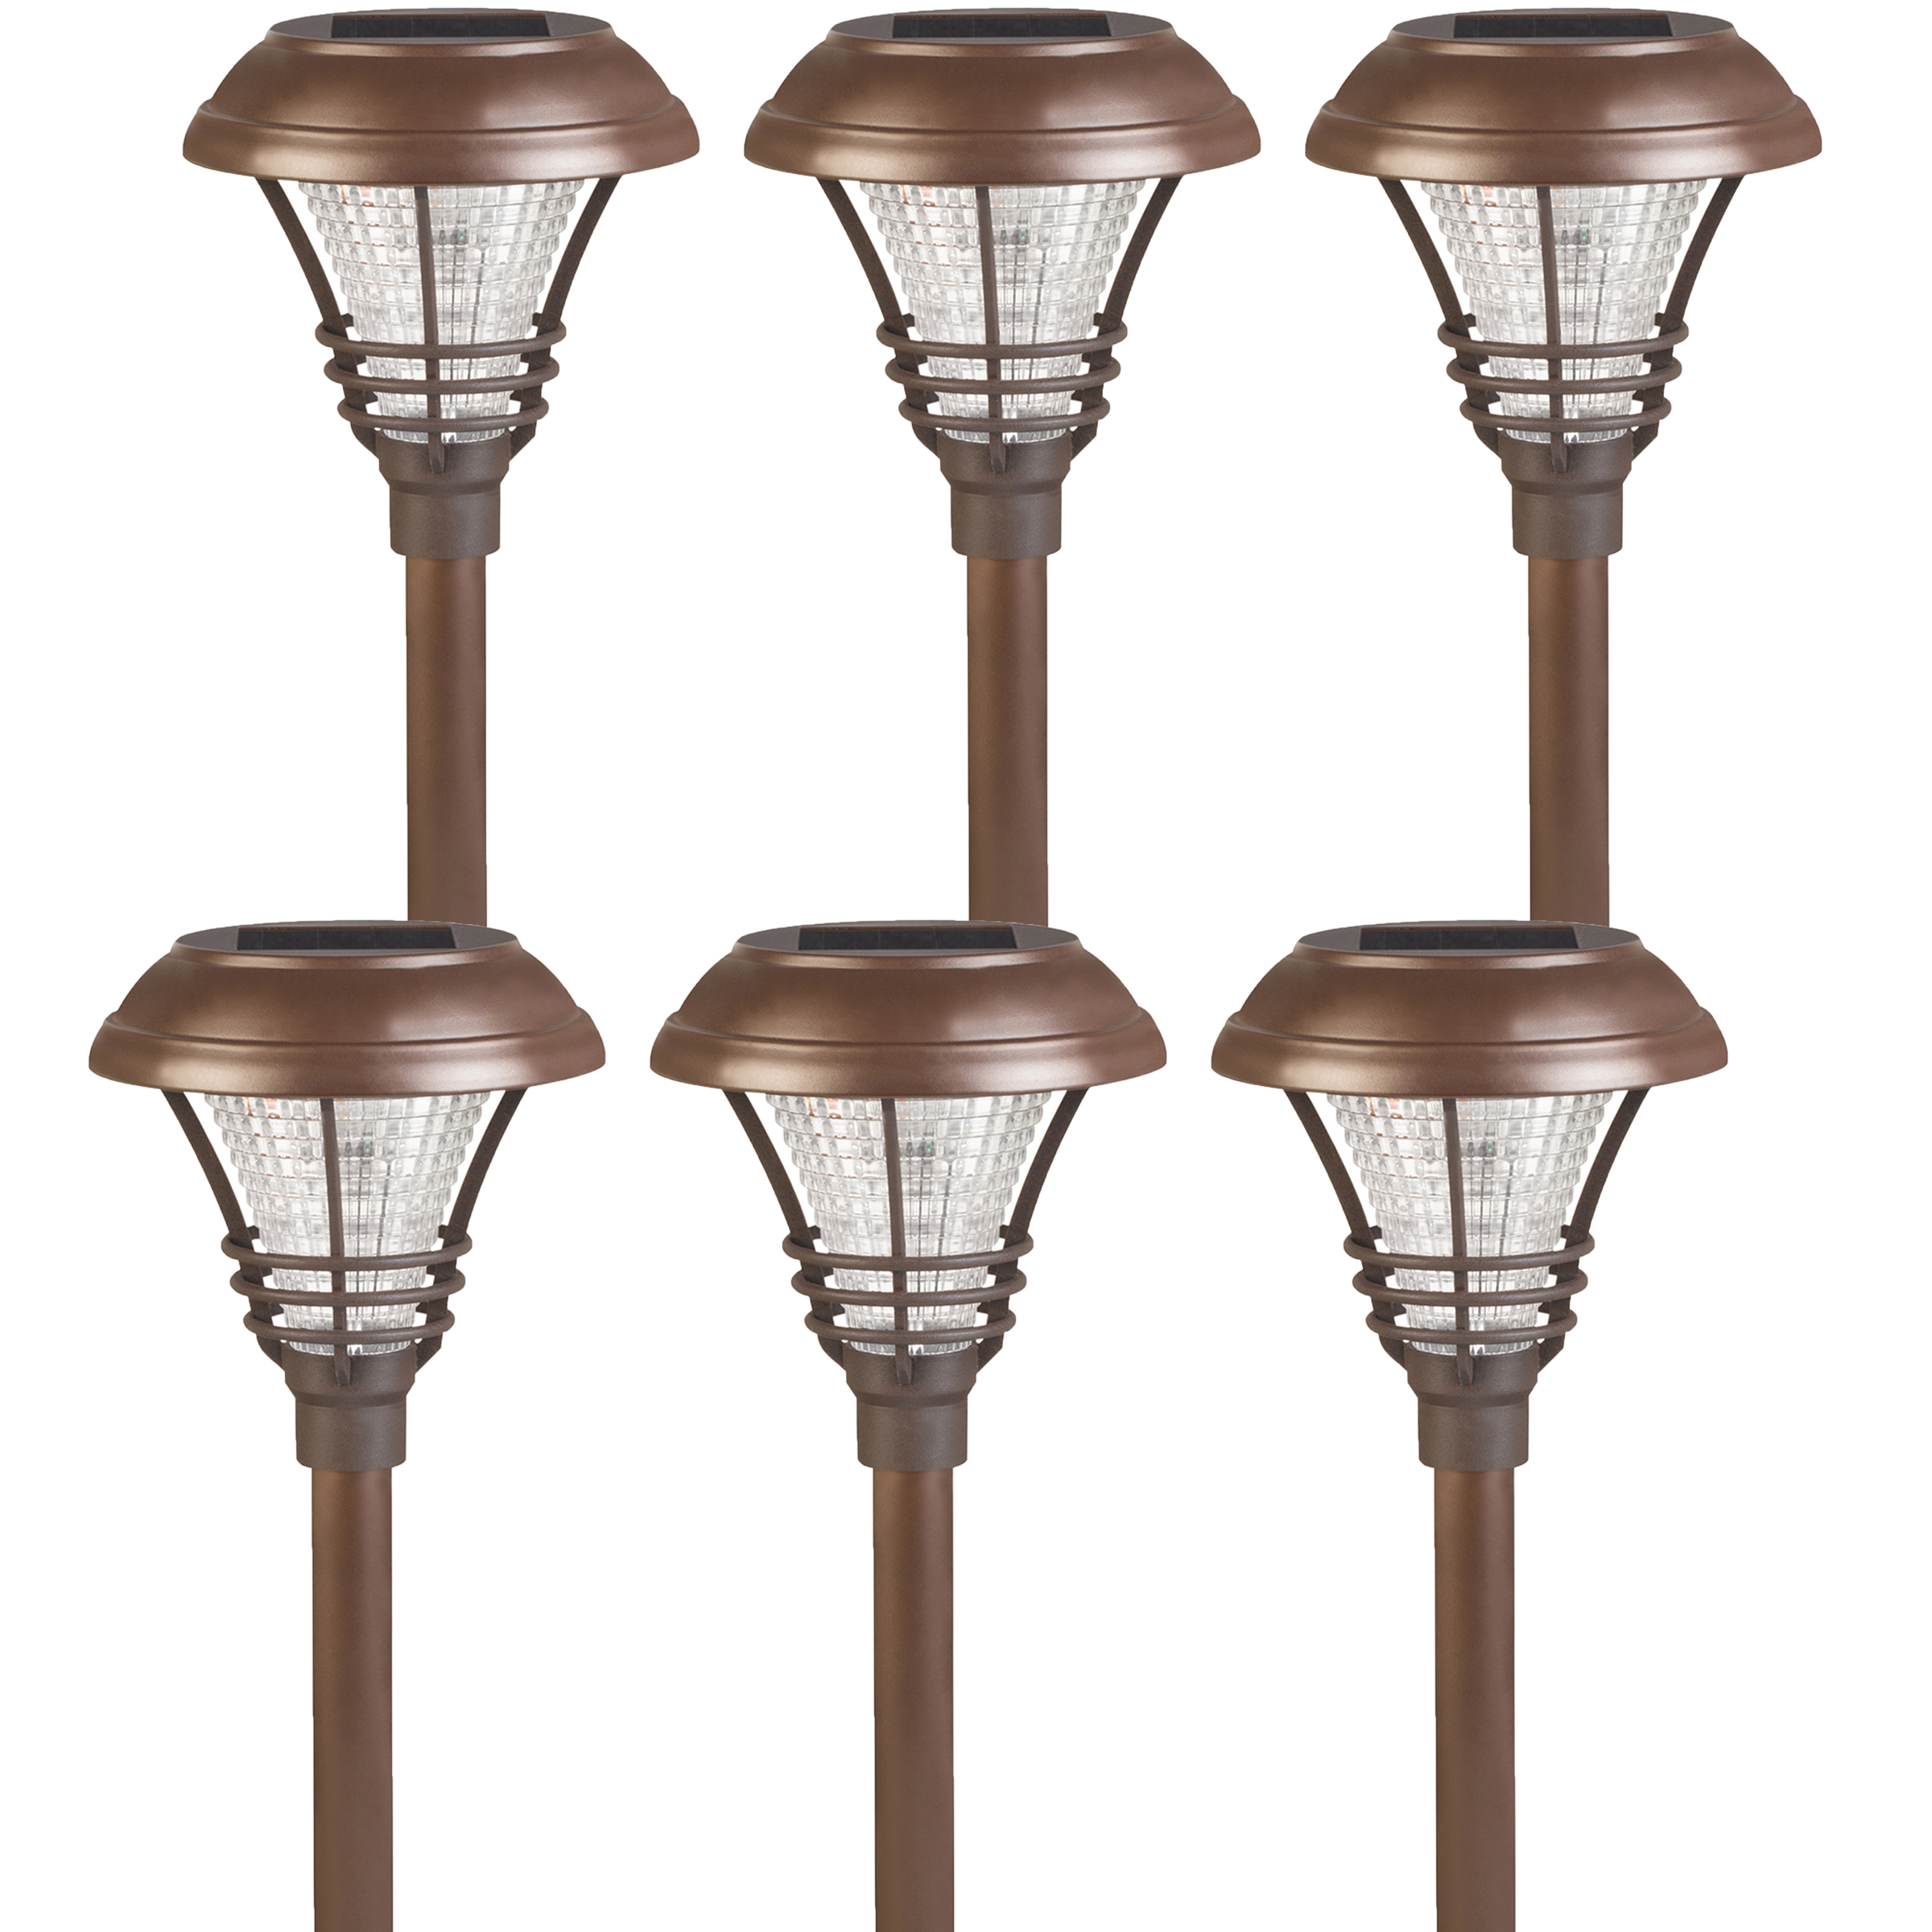 westinghouse new brown kenbury solar outdoor garden led stake path. Black Bedroom Furniture Sets. Home Design Ideas